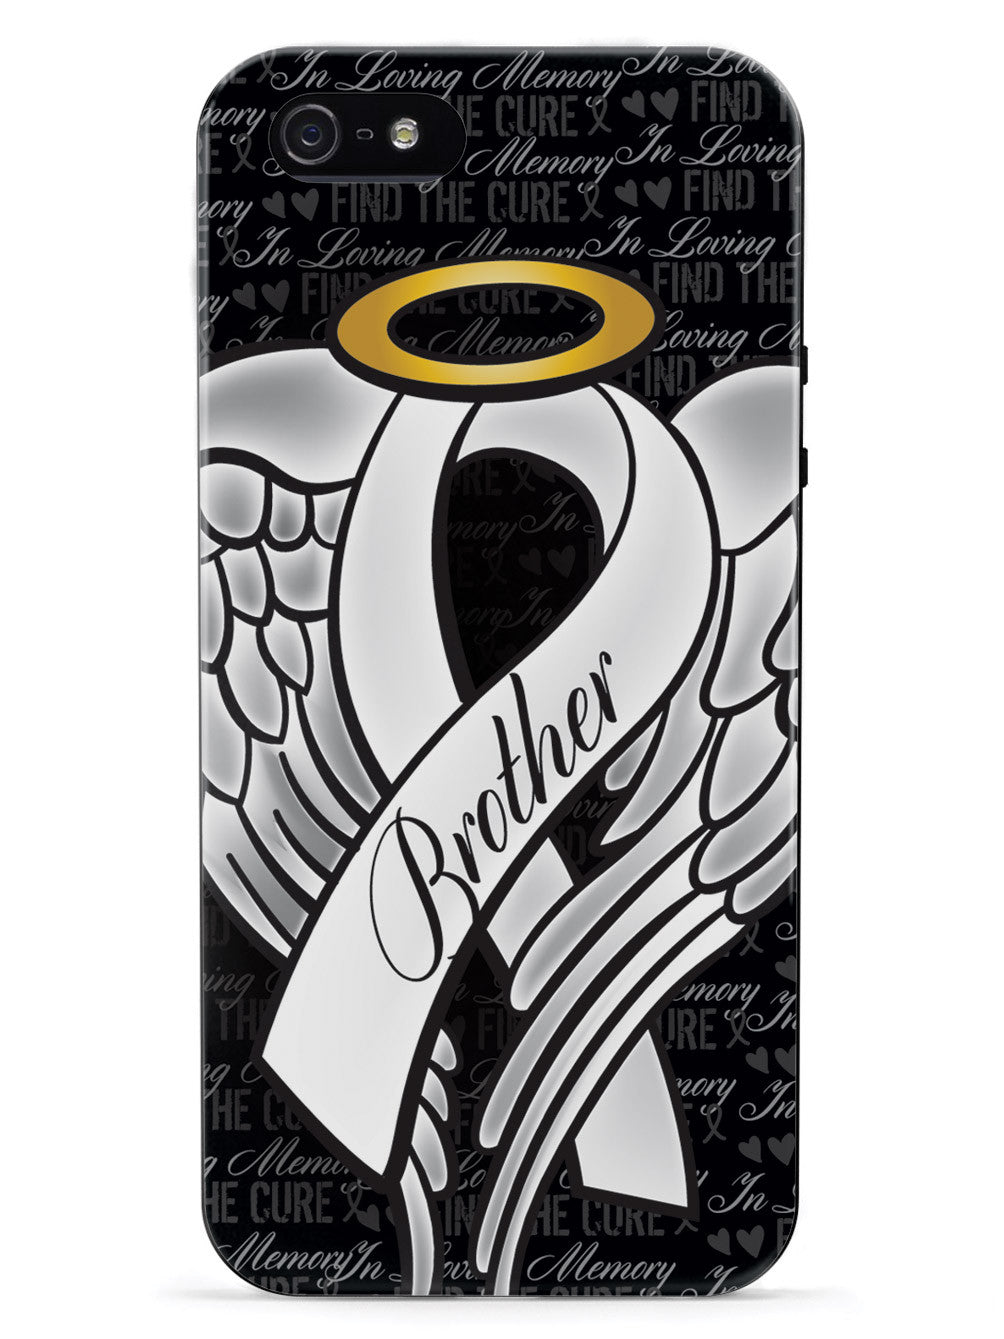 In Loving Memory of My Brother - White Ribbon Case